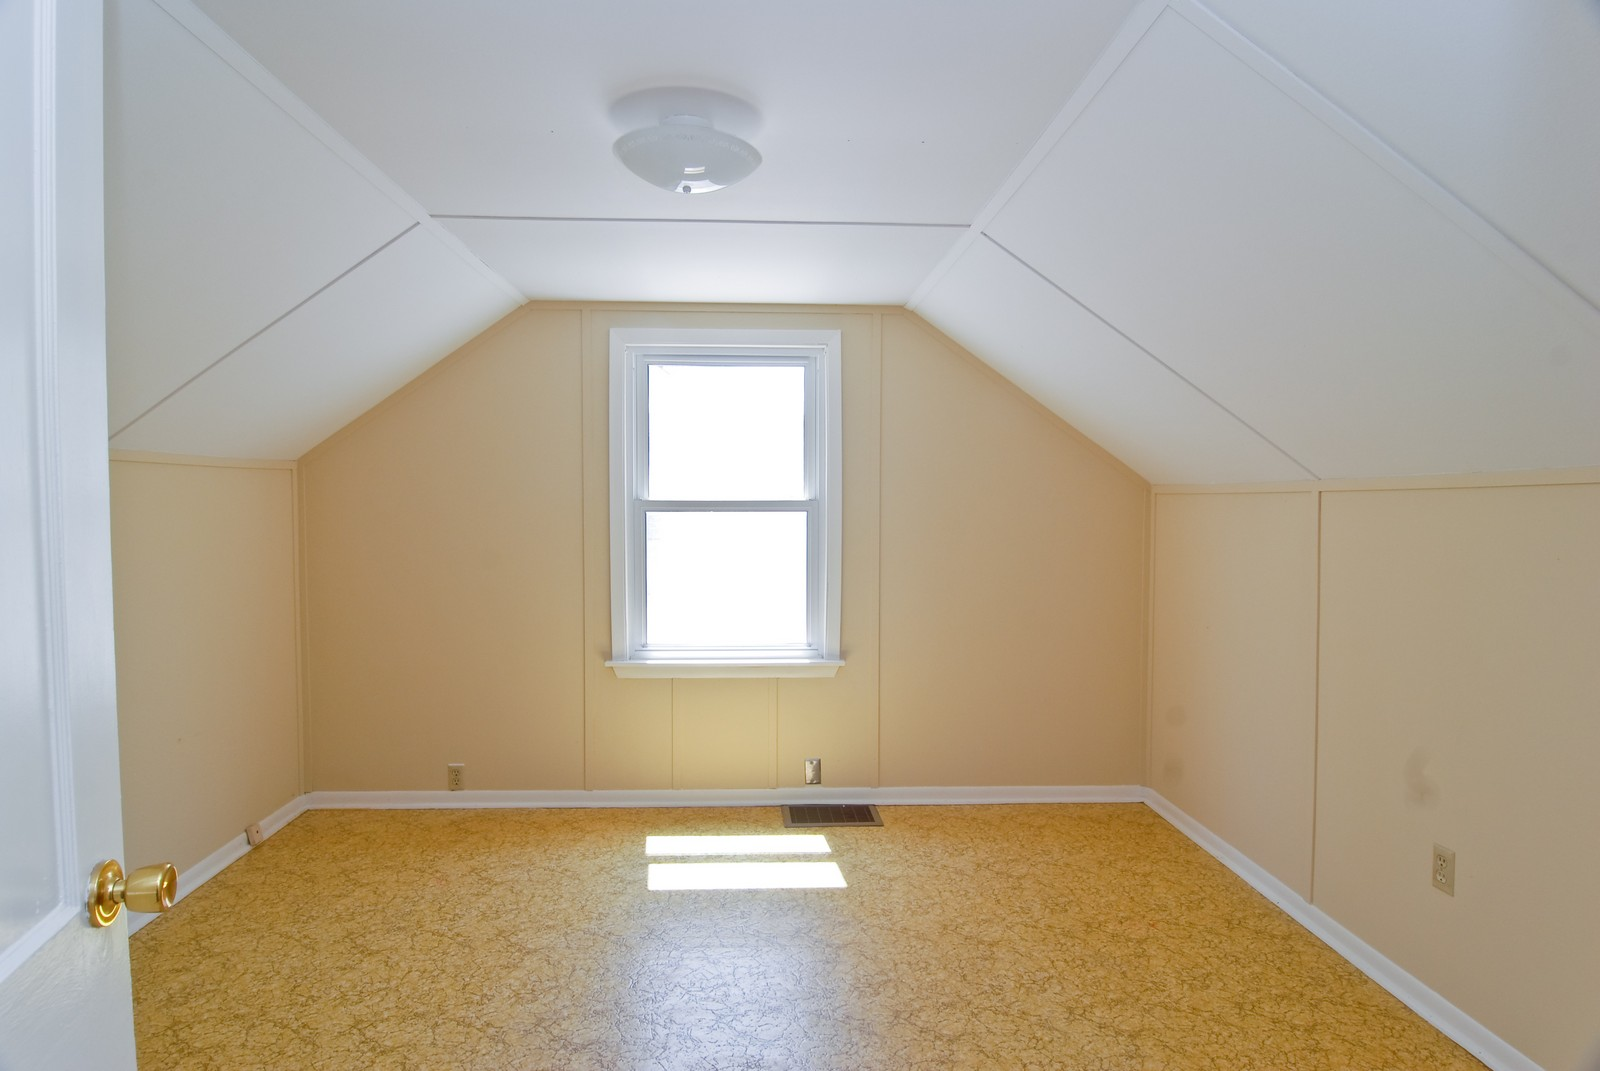 Real Estate Photography - 5525 Fremont Ave, Minneapolis, MN, 55419 - Master Bedroom